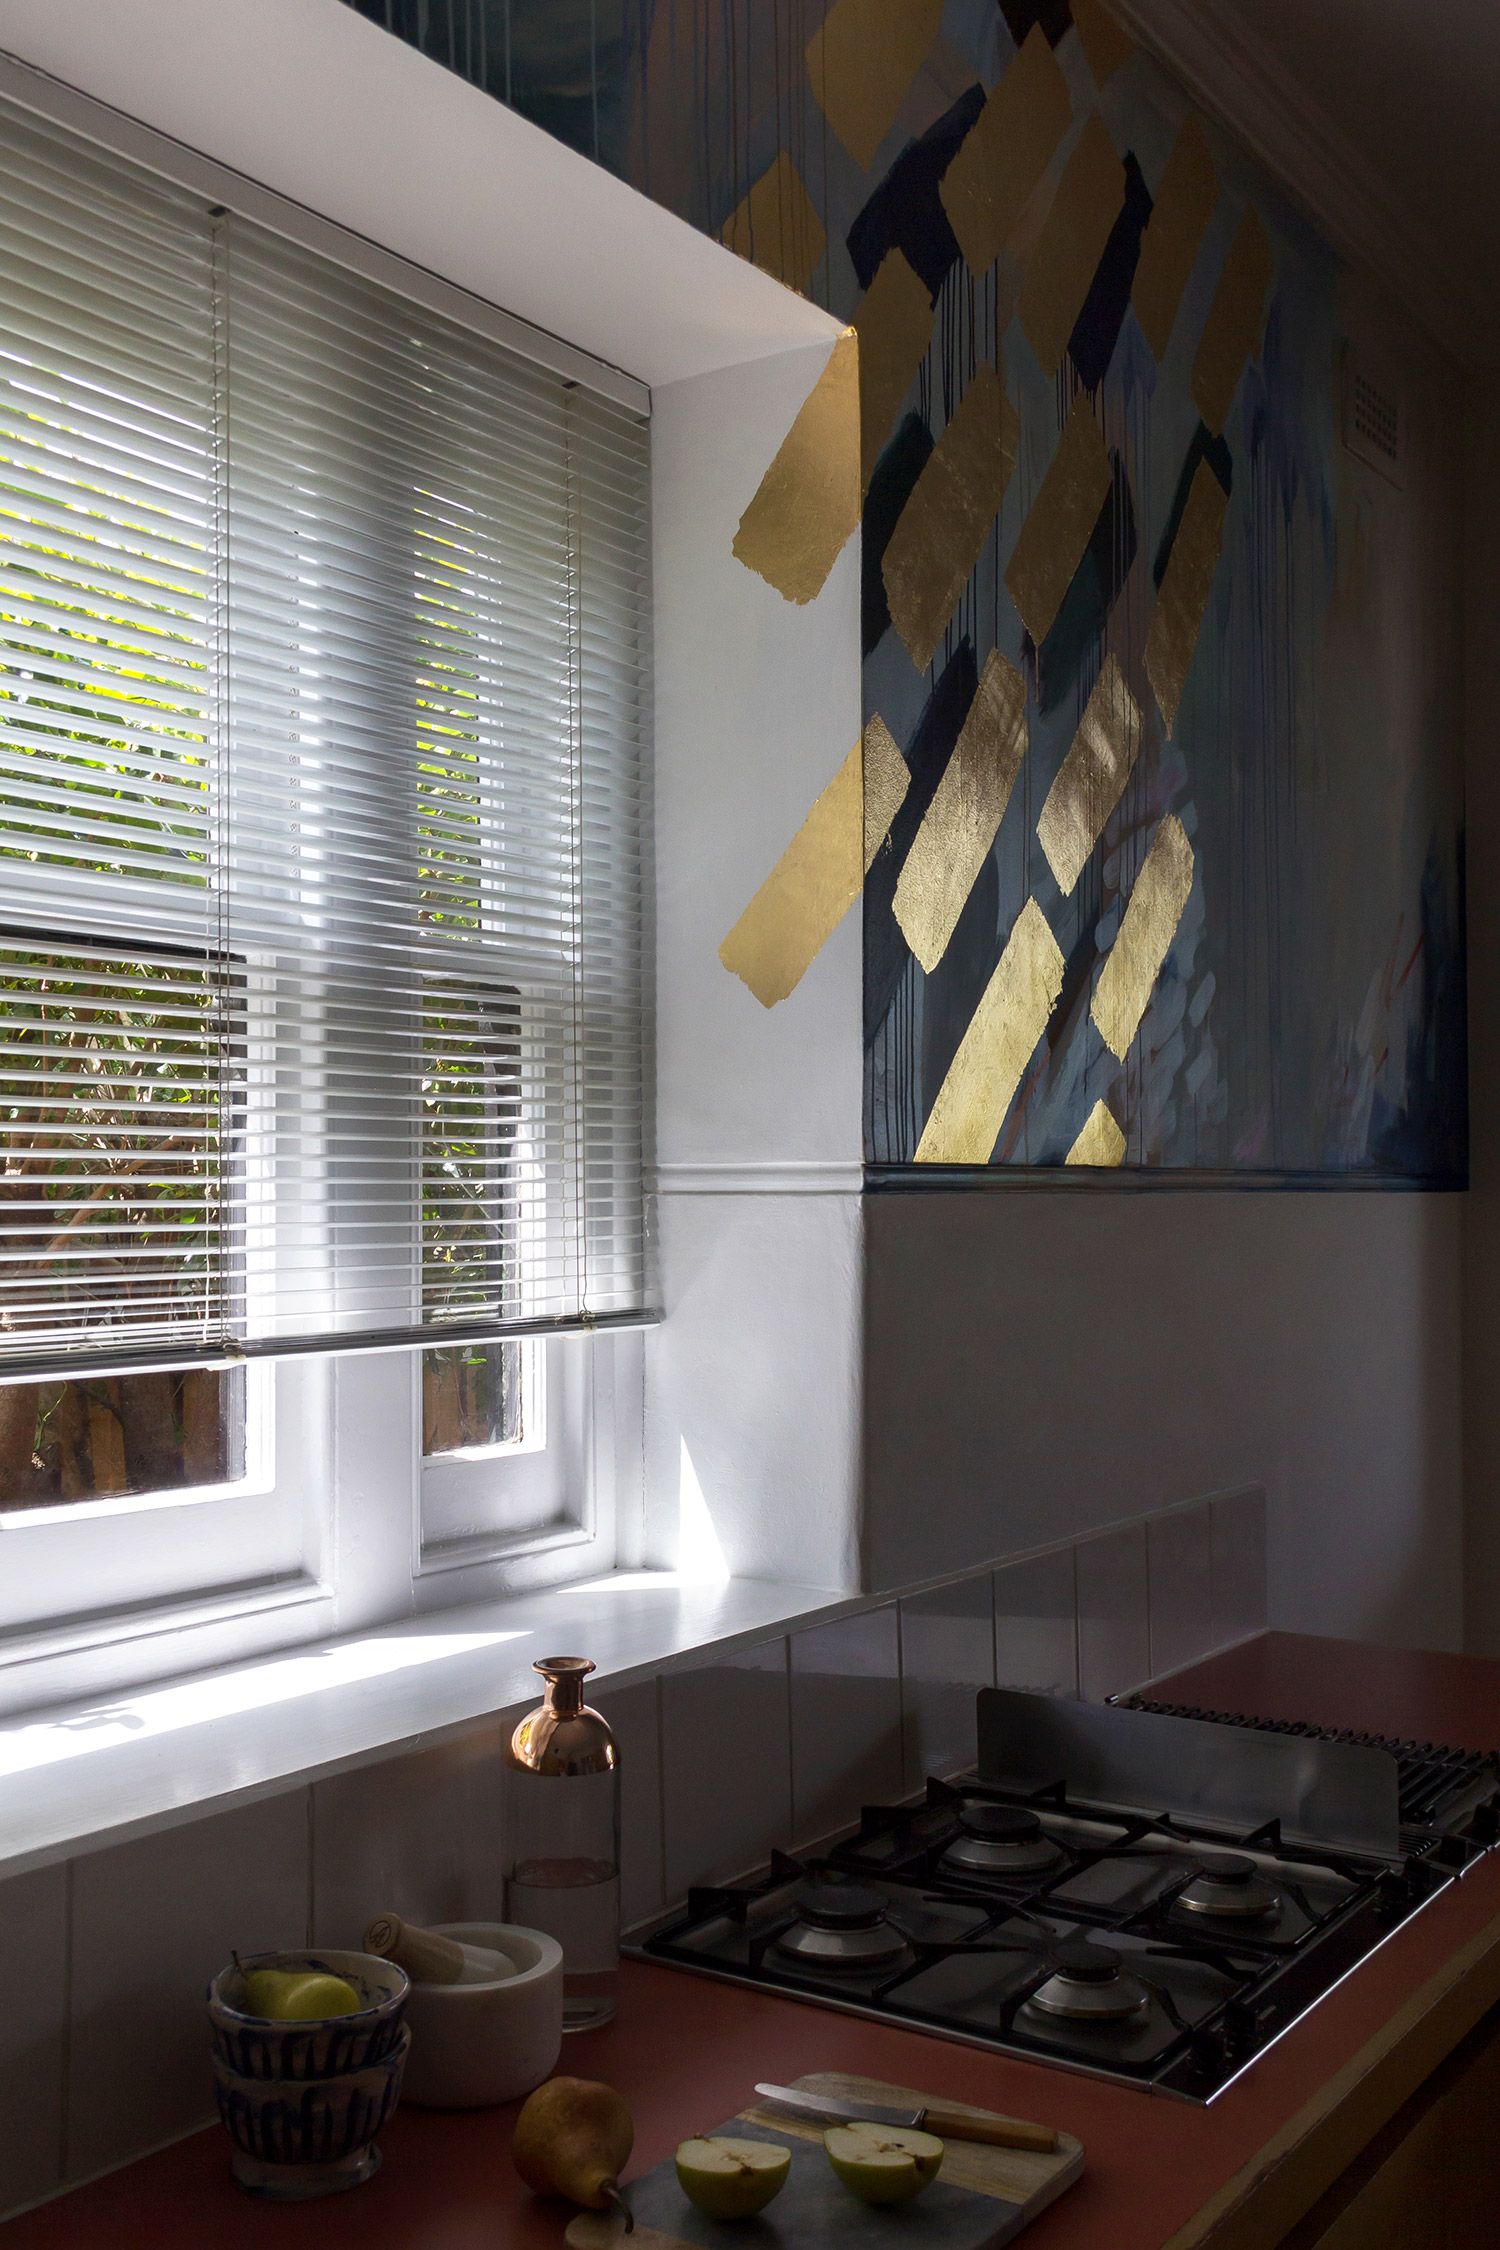 Modern, minimal, clean styled kitchen featuring gorgeous abstract mural with gold leaf geometric shapes illuminated by the sun, contemporary and fresh feel, fruit still life on bench.